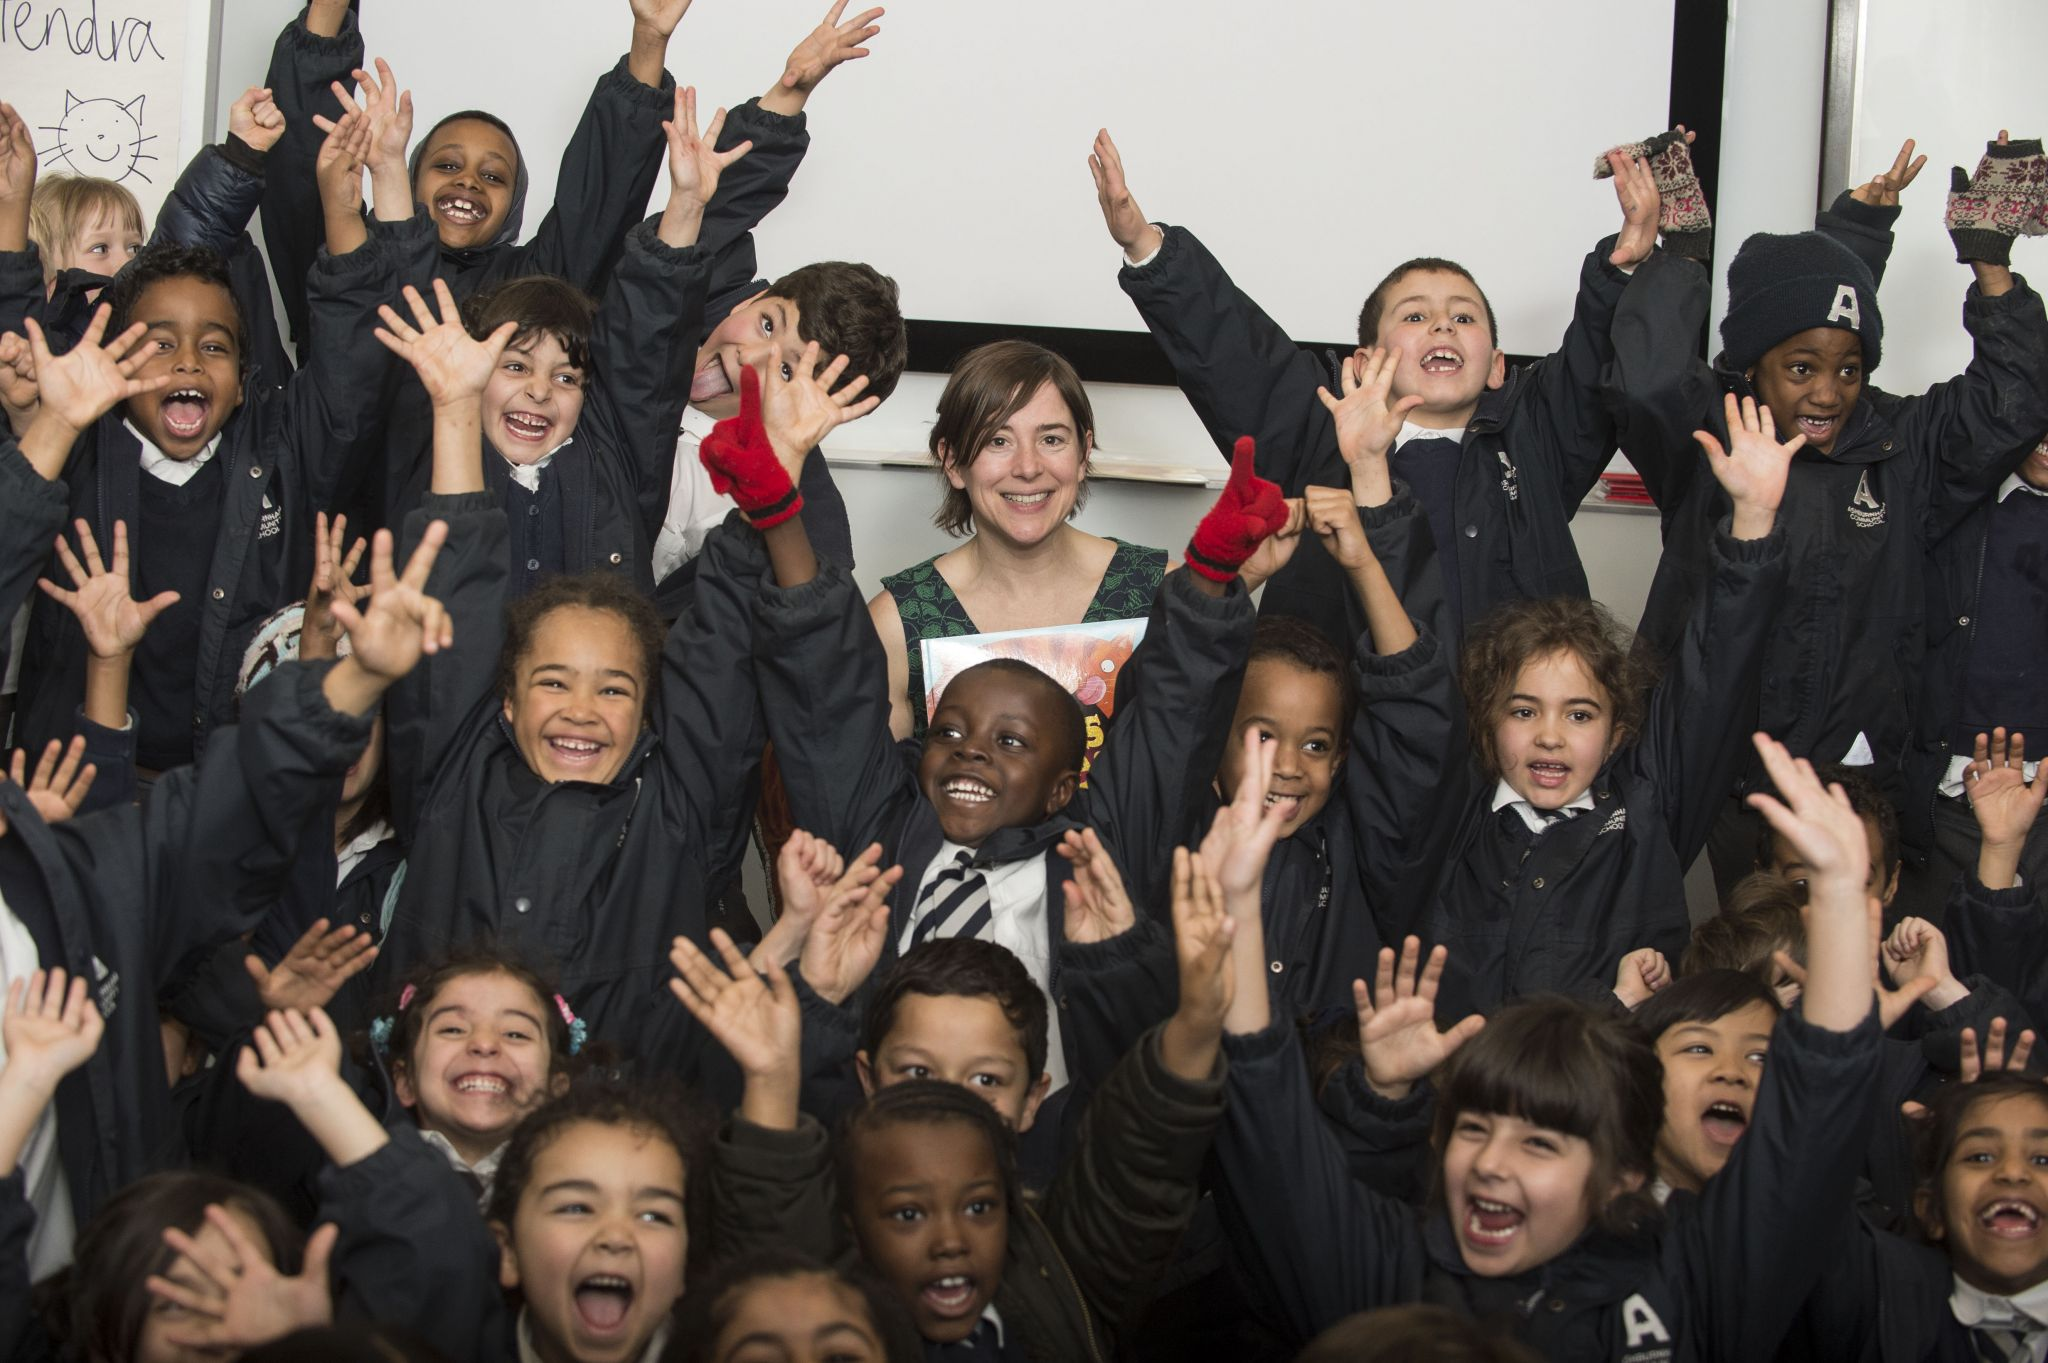 World Book Day - Sue Hendra gives a reading of Dave's Big Breakfast to School children, London, England, 05.03.14